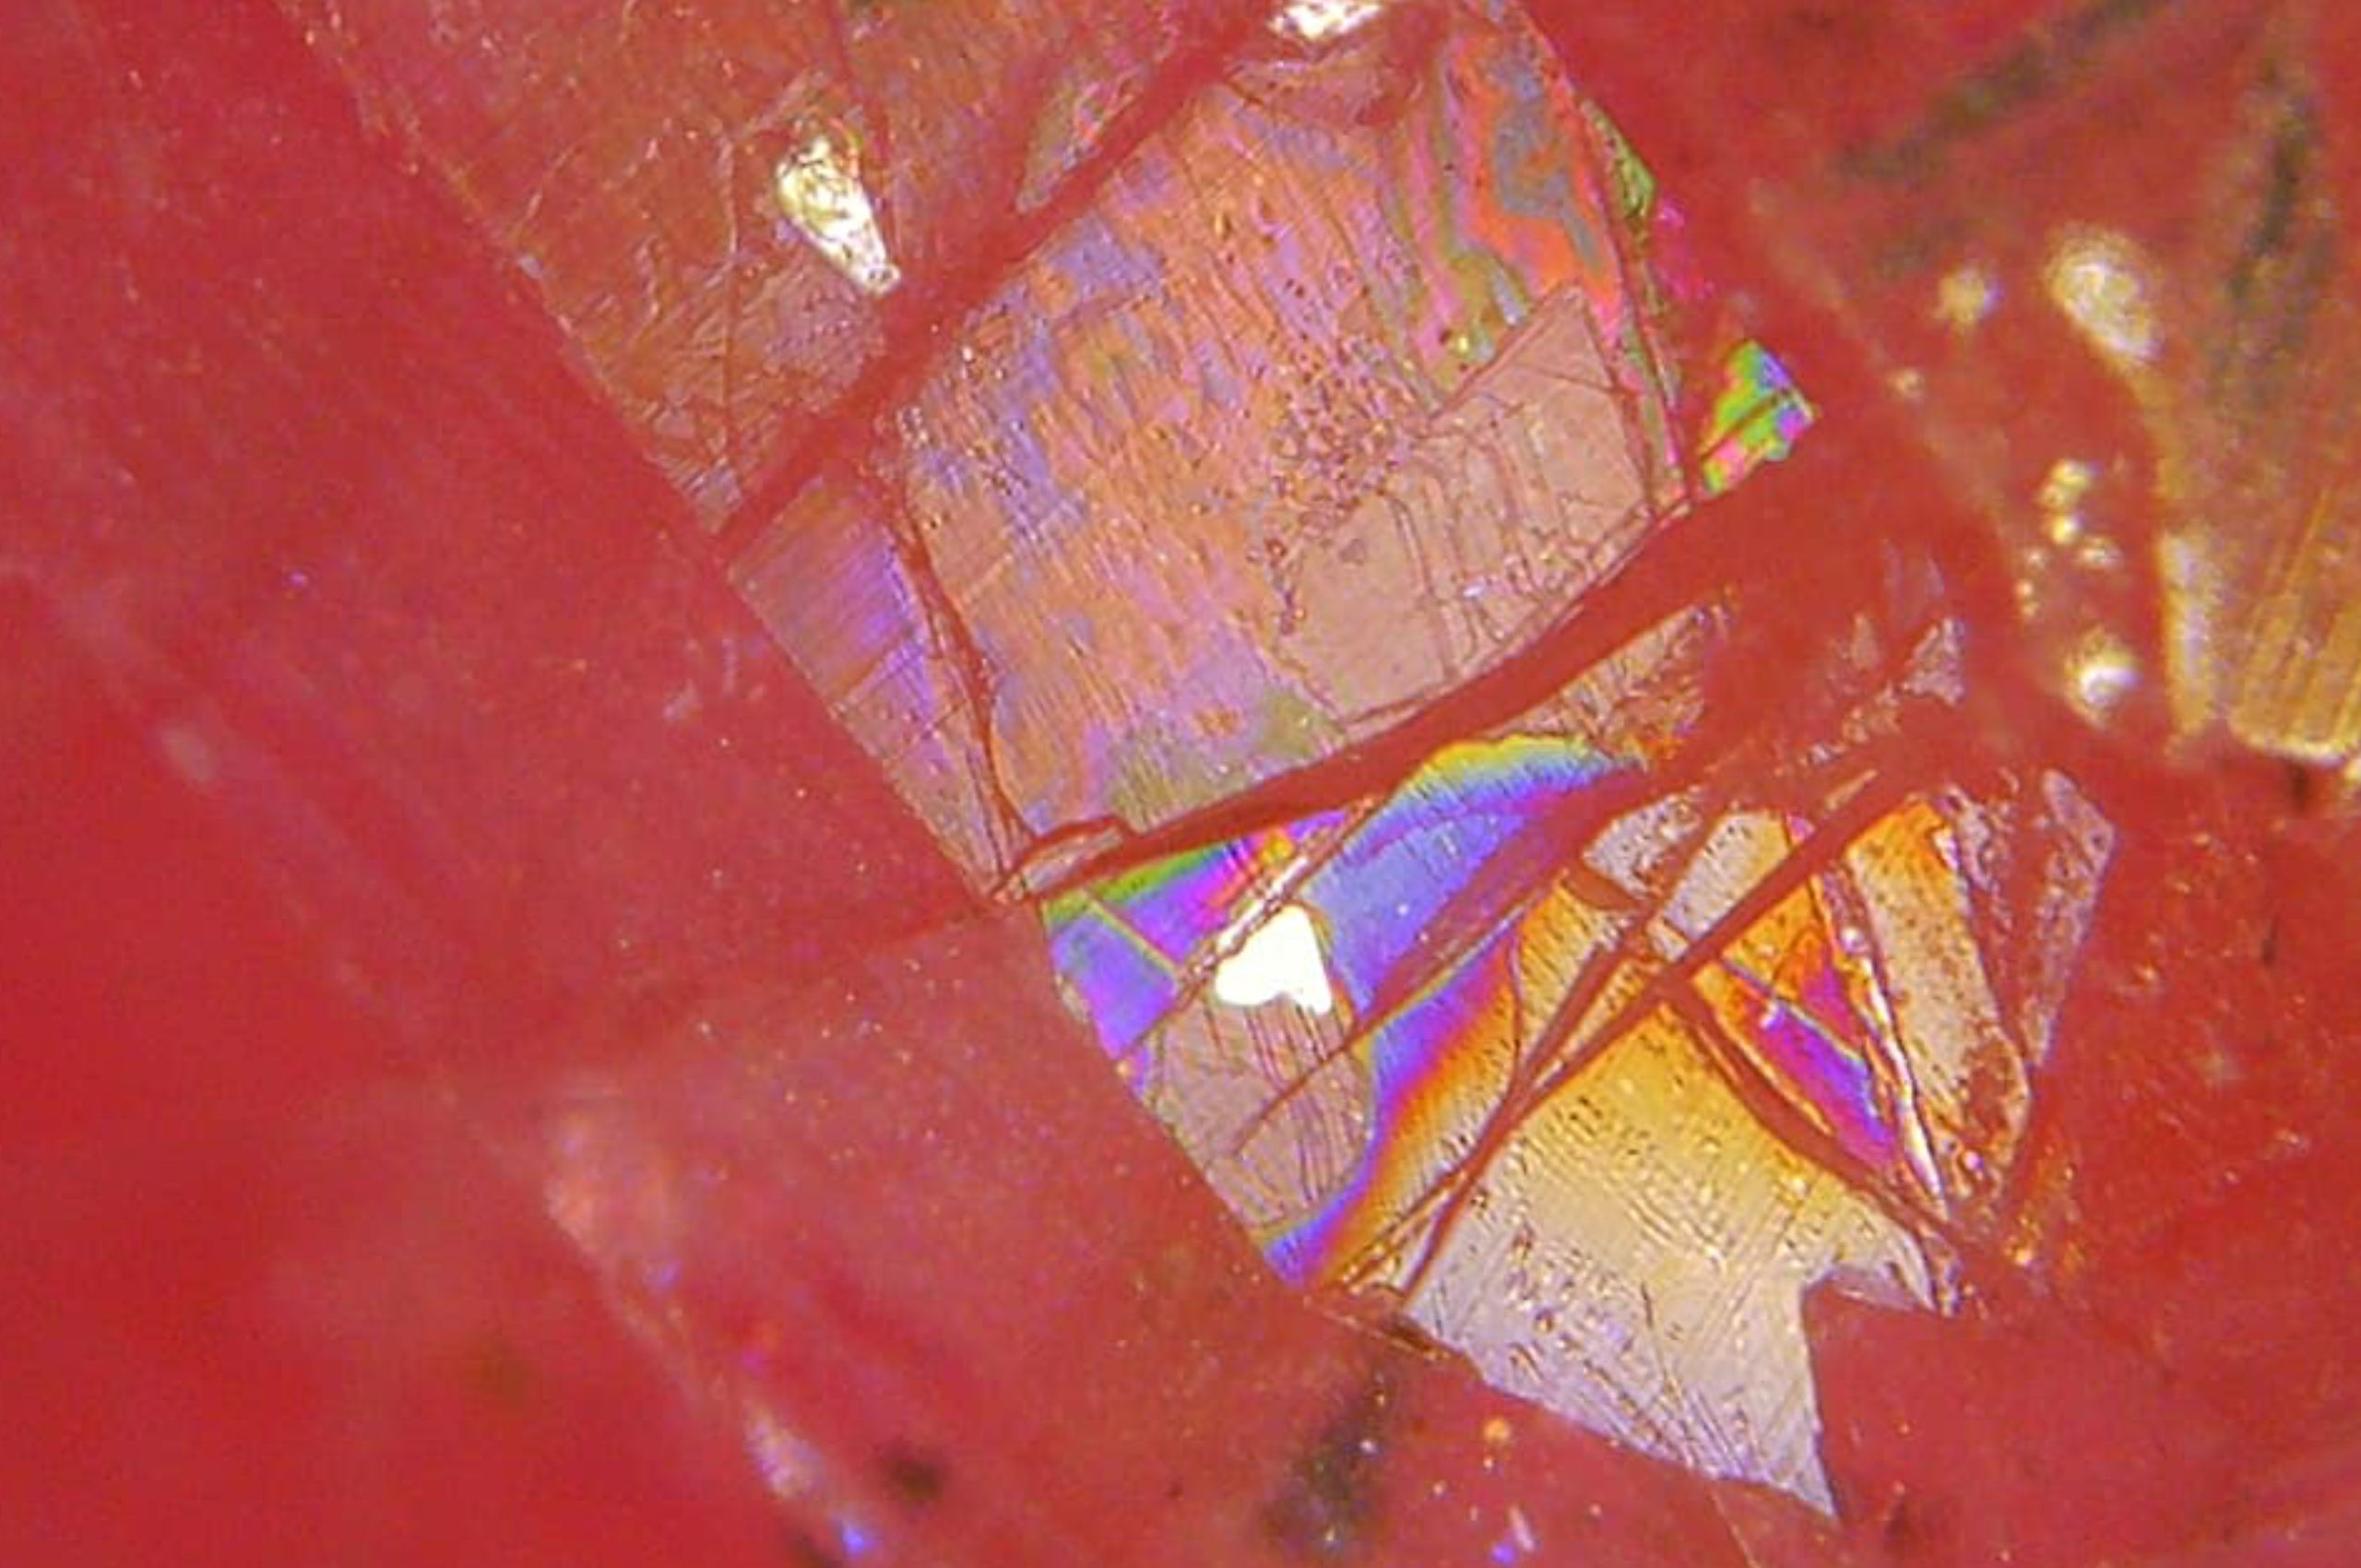 Iridescence in Lead glass filled Ruby. Photo by Karen Calef